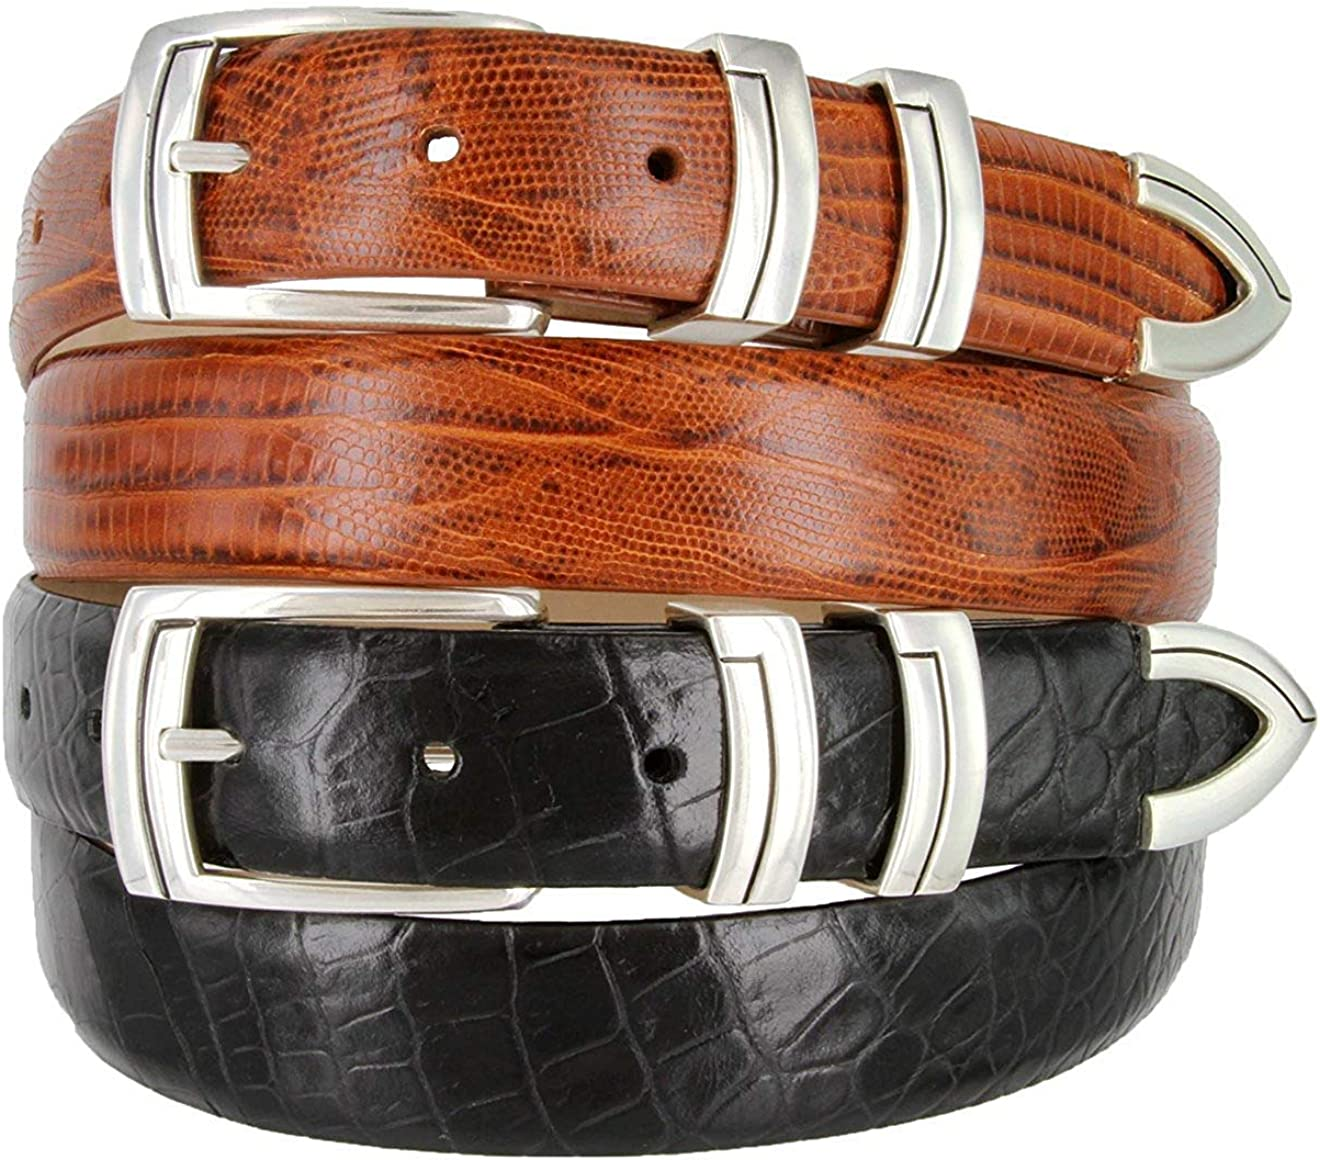 BBBelts Men 1-1//8 Wide Genuine Italian Calfskin 3 Piece Silvered Buckle Belt